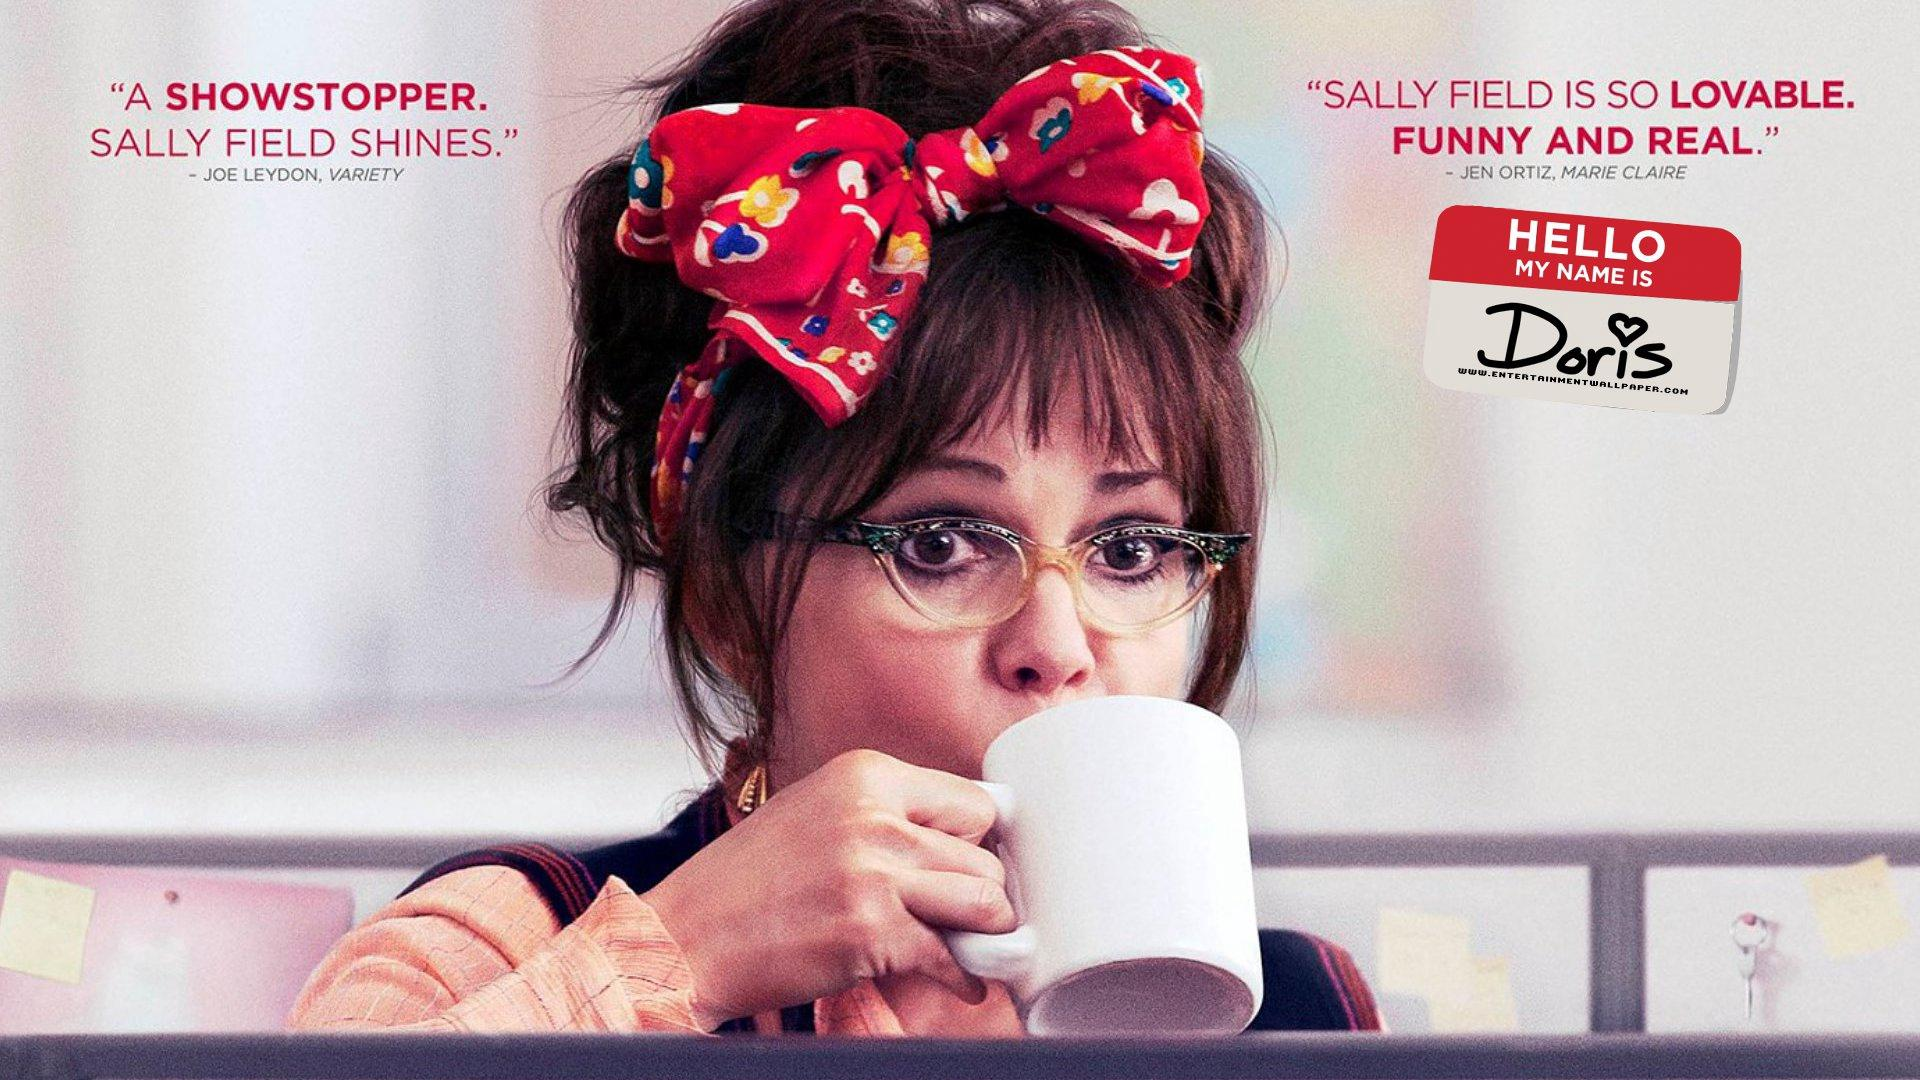 Download wallpapers 1920x1080 hello my name is doris, sally field